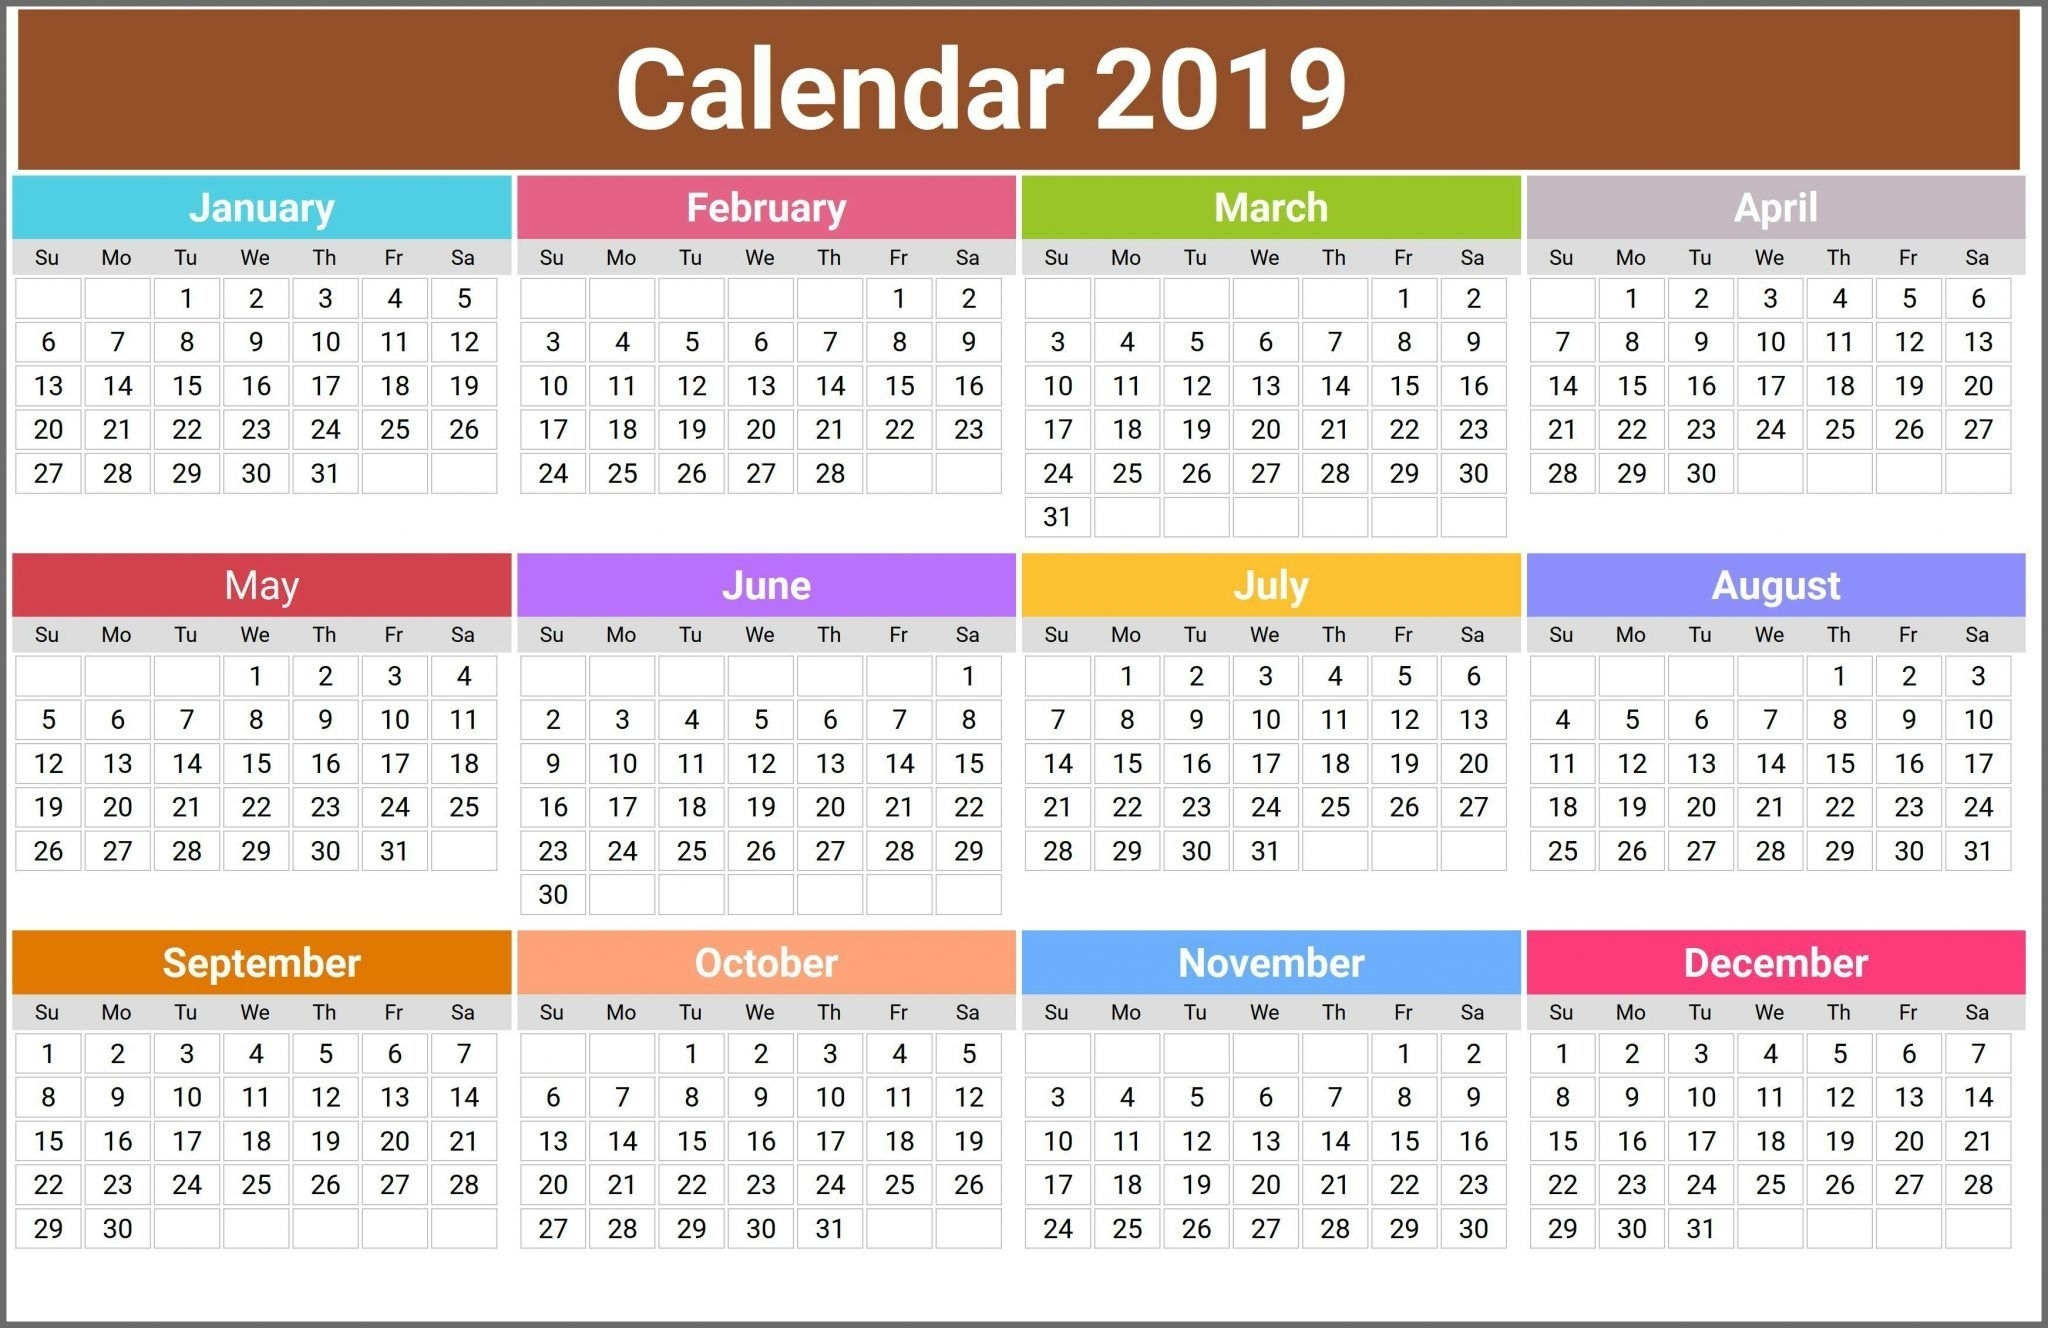 12 Month Calendar In One Page | Top 10 Free 2019 Calendar Printable with regard to Template For Calendar With 12 Months On One Page